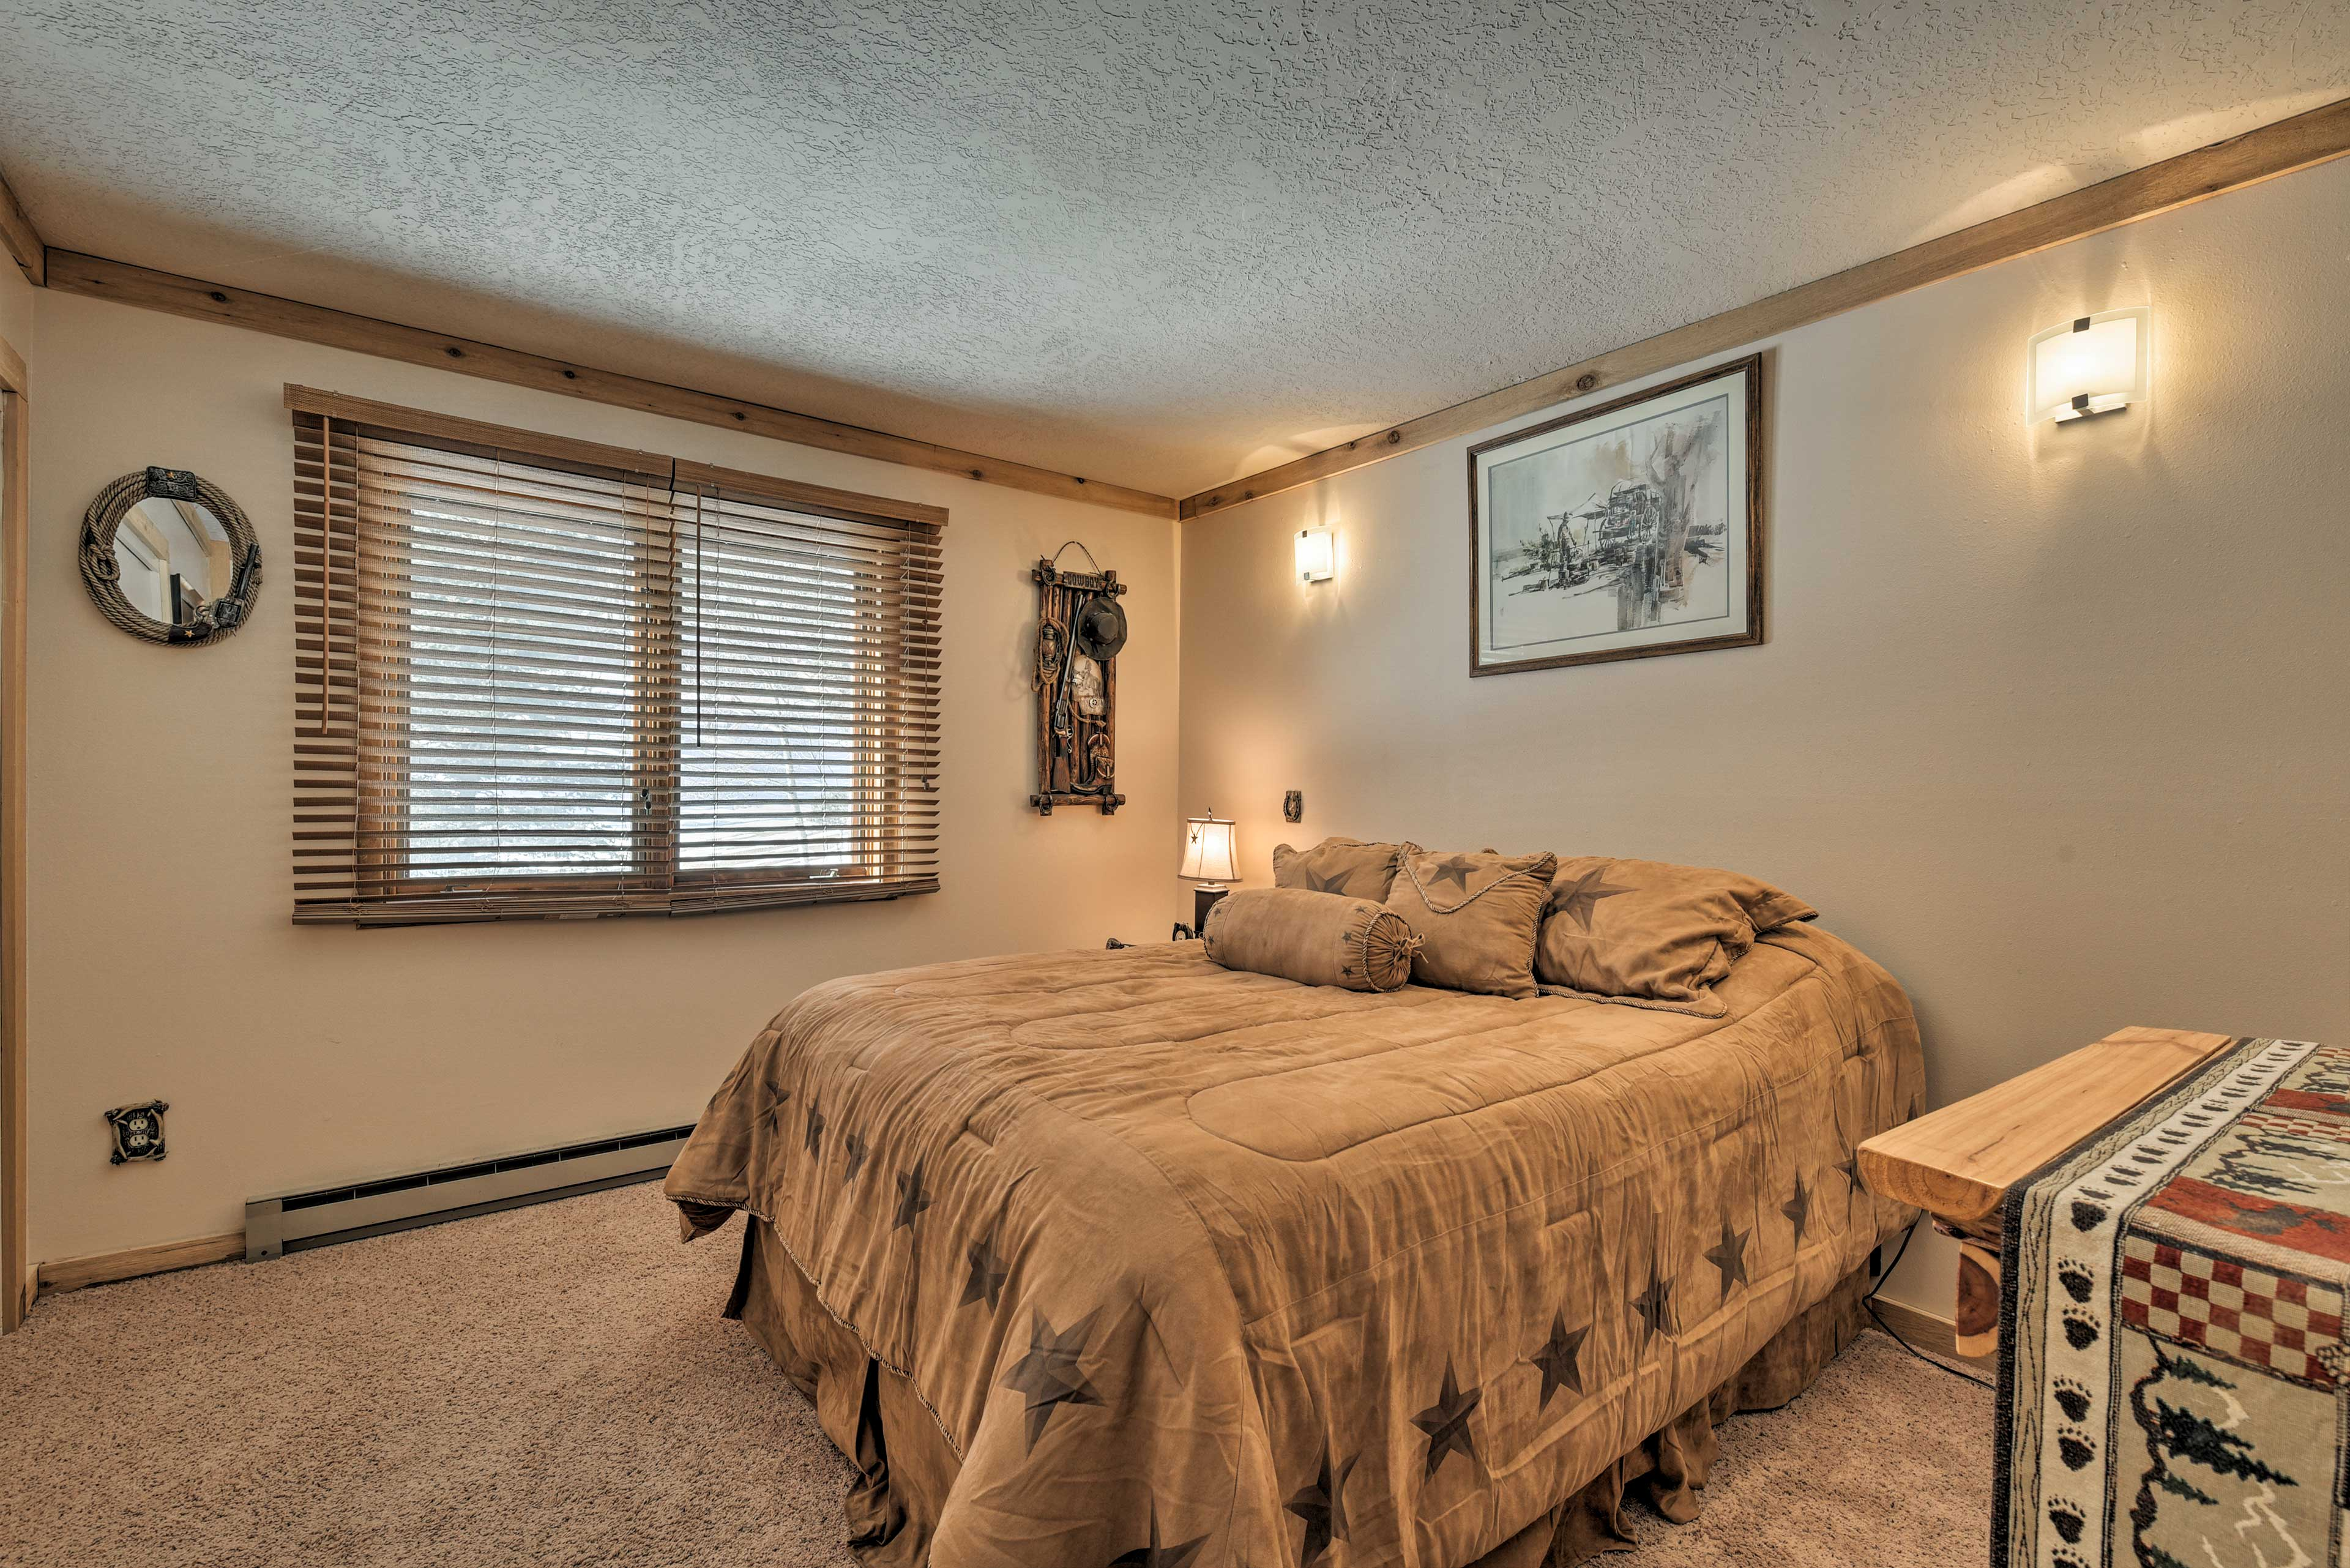 The master bedroom boasts a queen-sized bed and rustic decor.